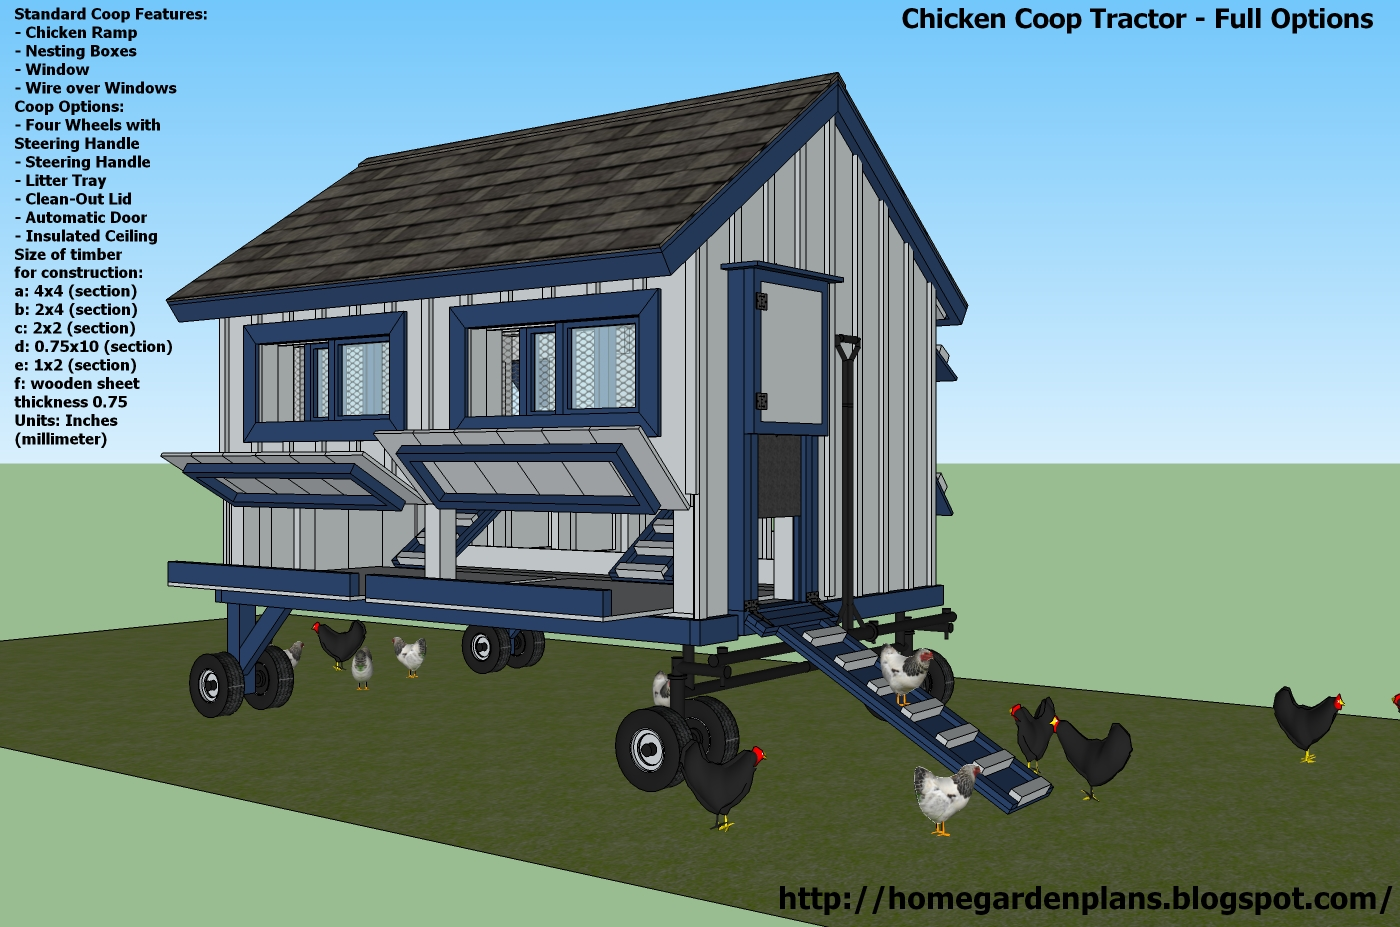 - Free Chicken Coop Tractor Plans - How to build a Chicken Coop